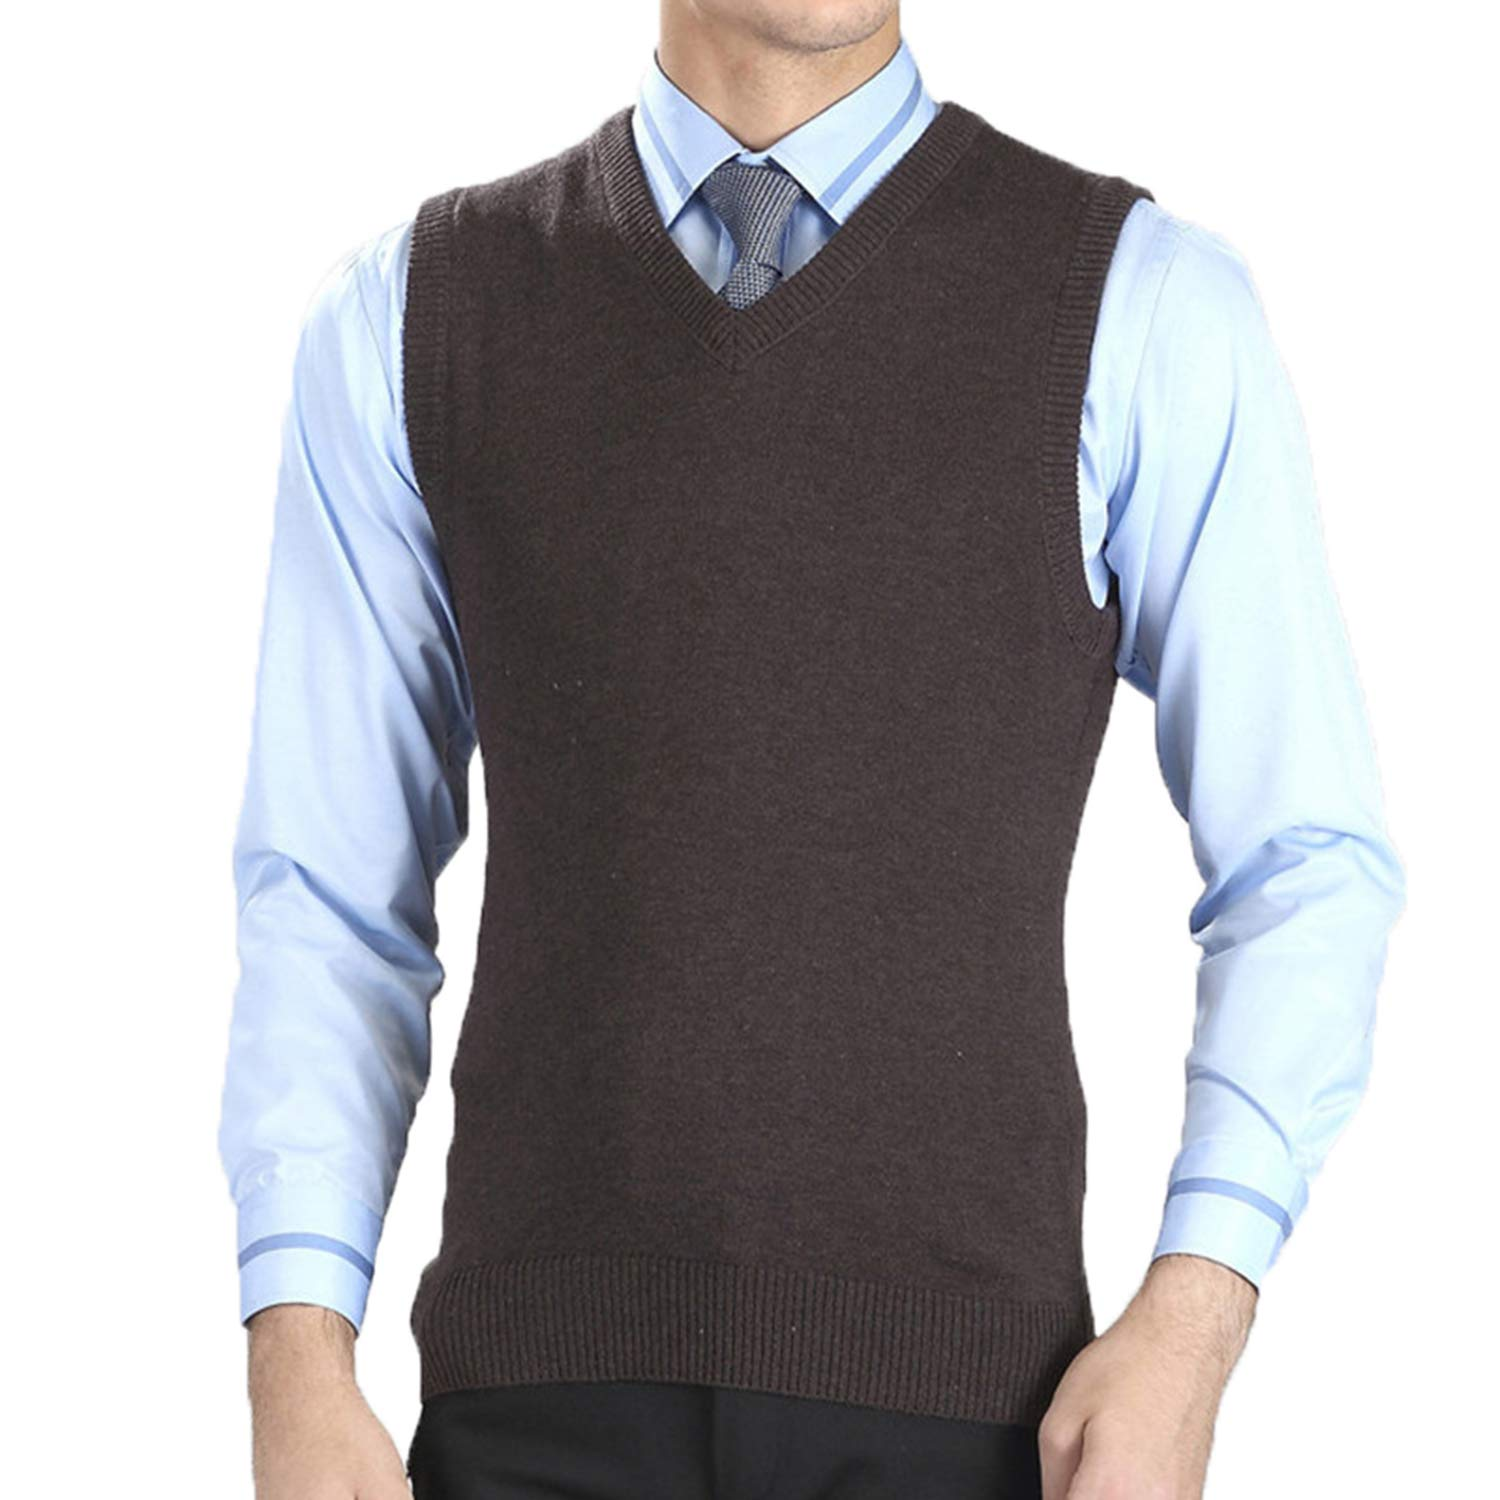 LOG SWIT Mens Vest Sweaters Casual Style Wool Knitted Business Men Sleeveless Vest